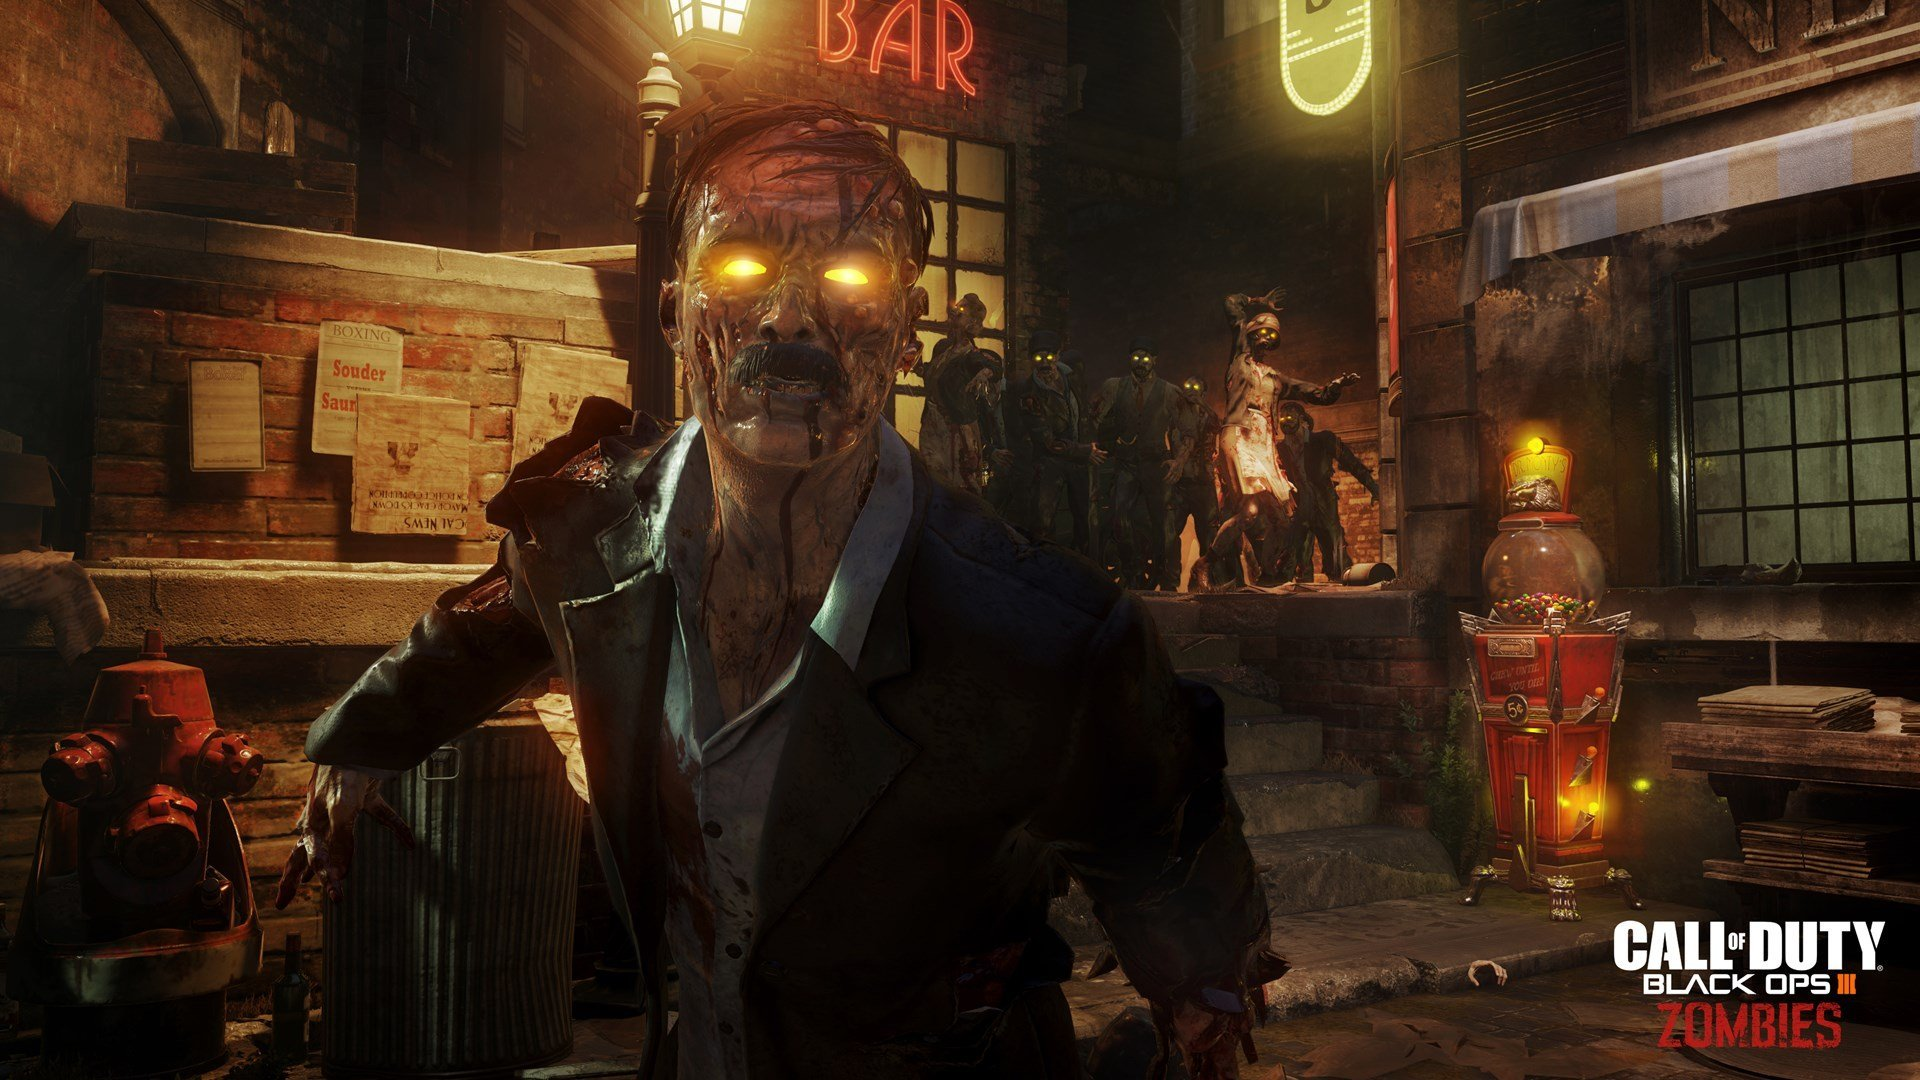 black-ops-3-zombies_shadows-of-evil-1_wm-copy